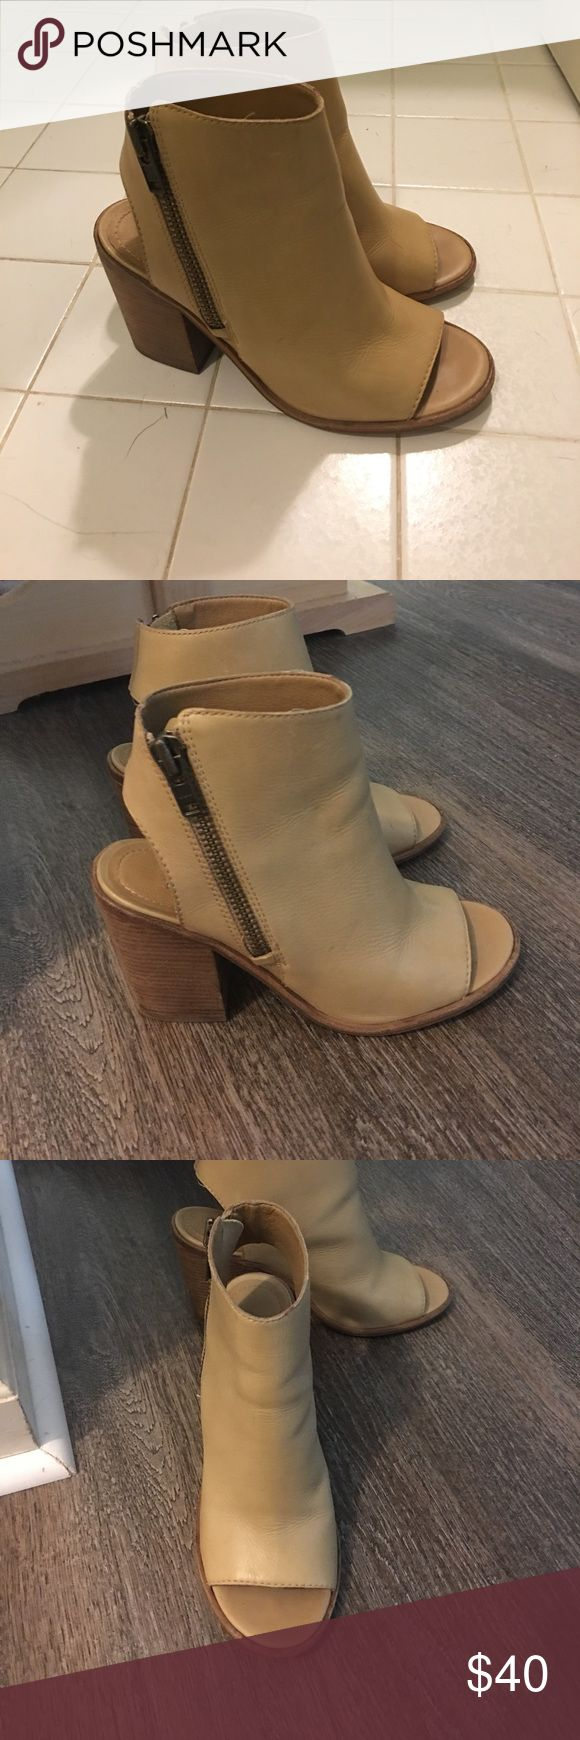 Steve Madden Terra bootie Tan, size 8. In great shape. Leather Steve Madden Shoes Ankle Boots & Booties